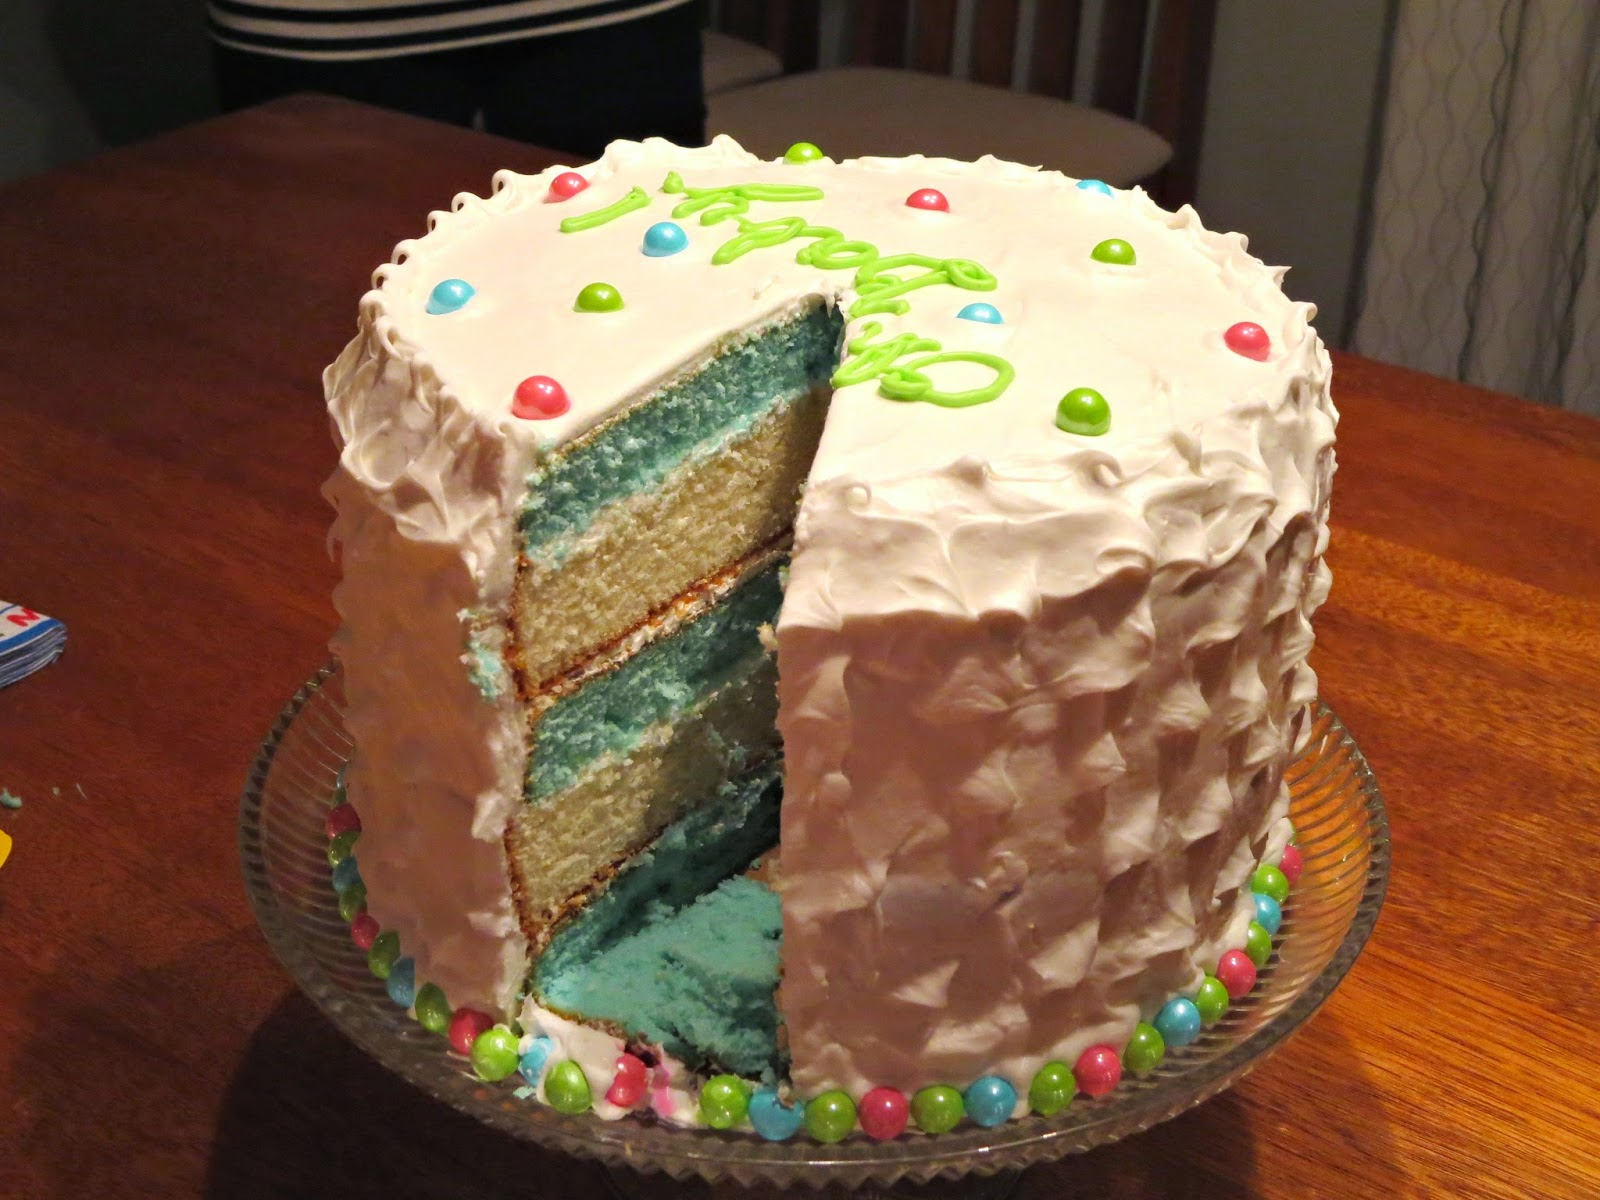 Baby Gender Reveal Cake - Inside of Cake - It's a BOY 1